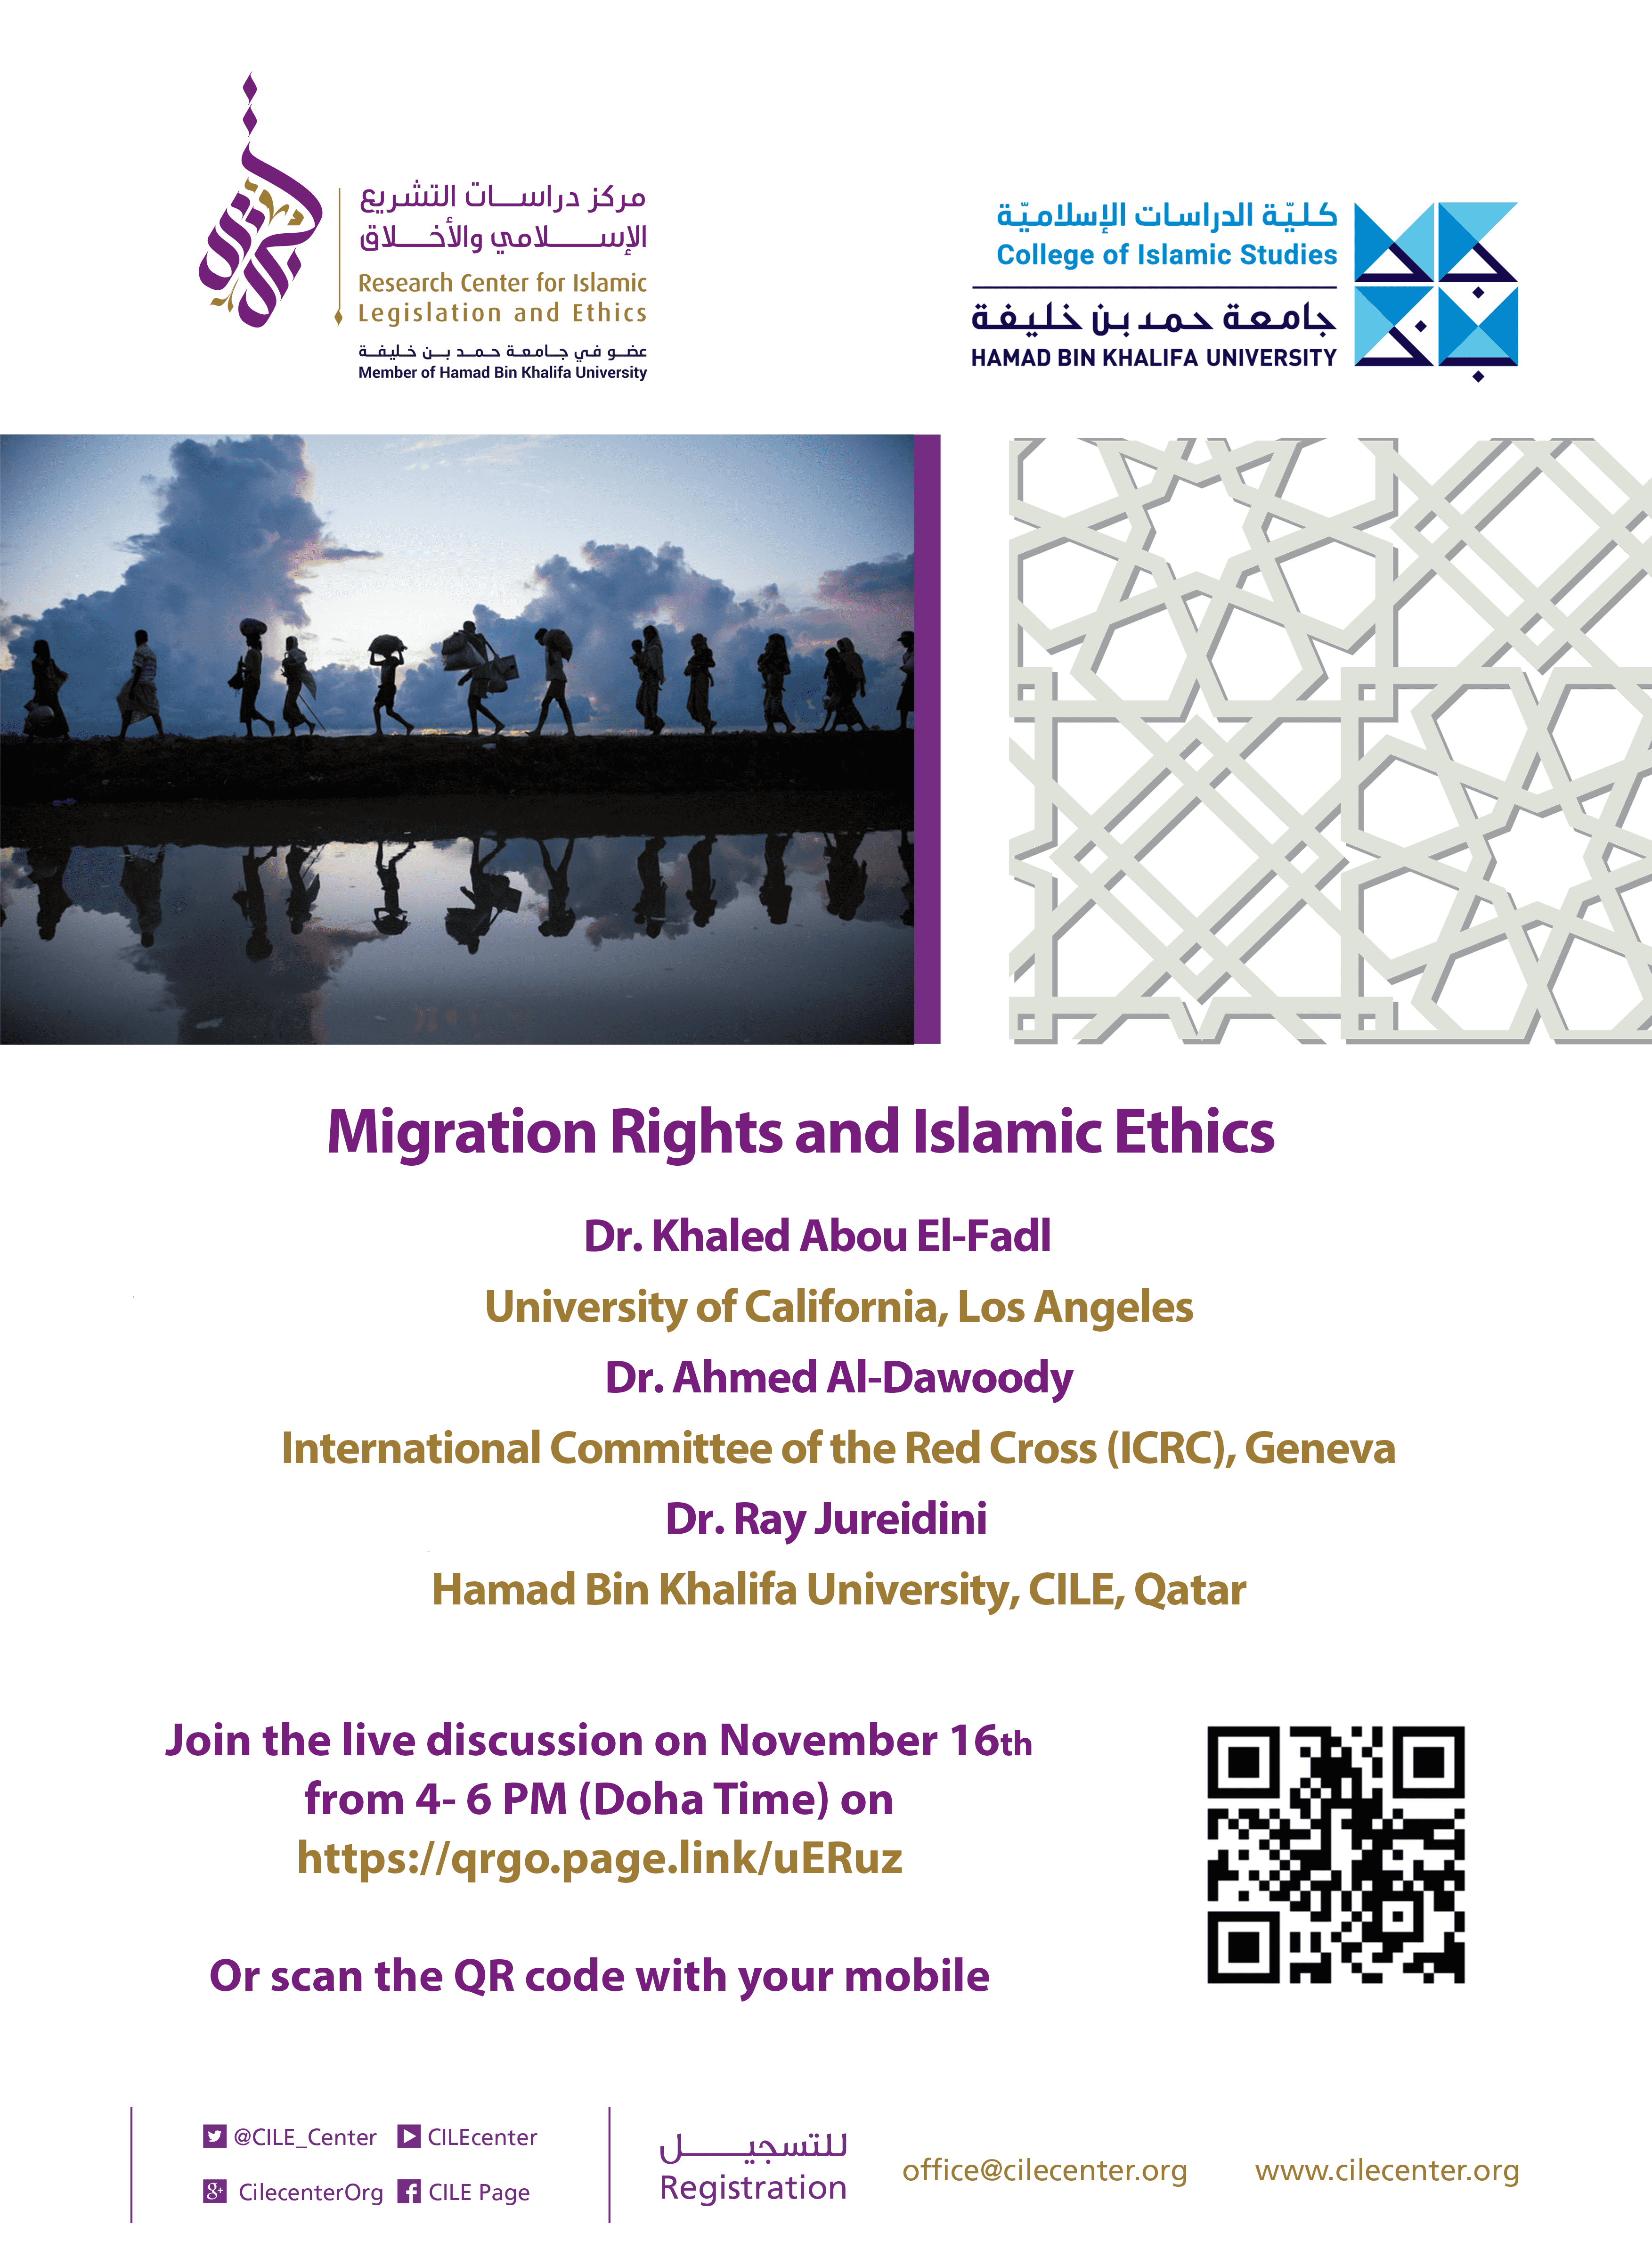 Migration Rights and Islamic Ethics